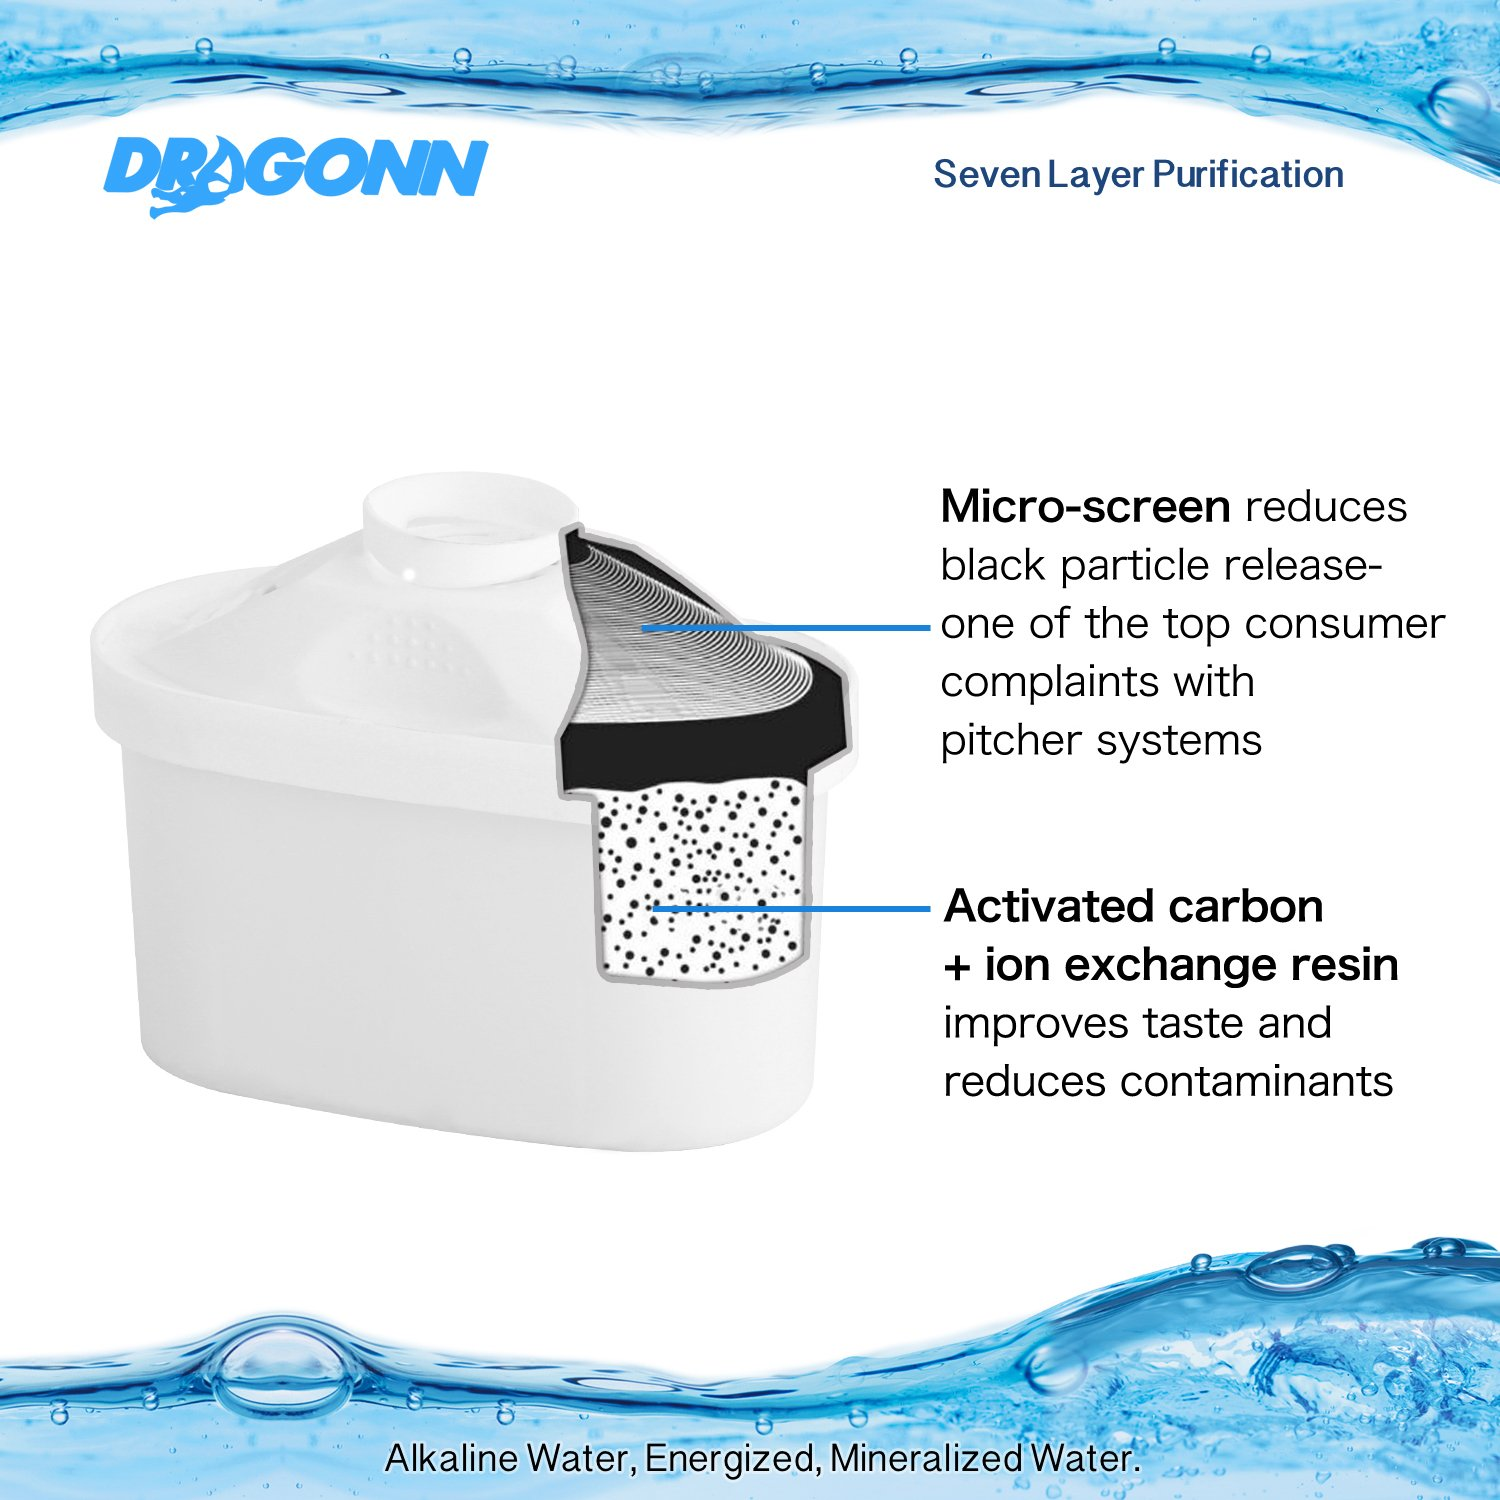 PH 8.5-9.5 Enhanced 2018 Model DAWP312 3.5 Liters Chlorine Free Filter Removes Lead Copper and More DRAGONN pH Restore Alkaline Water Pitcher 7 Stage Filteration System with LED Timer